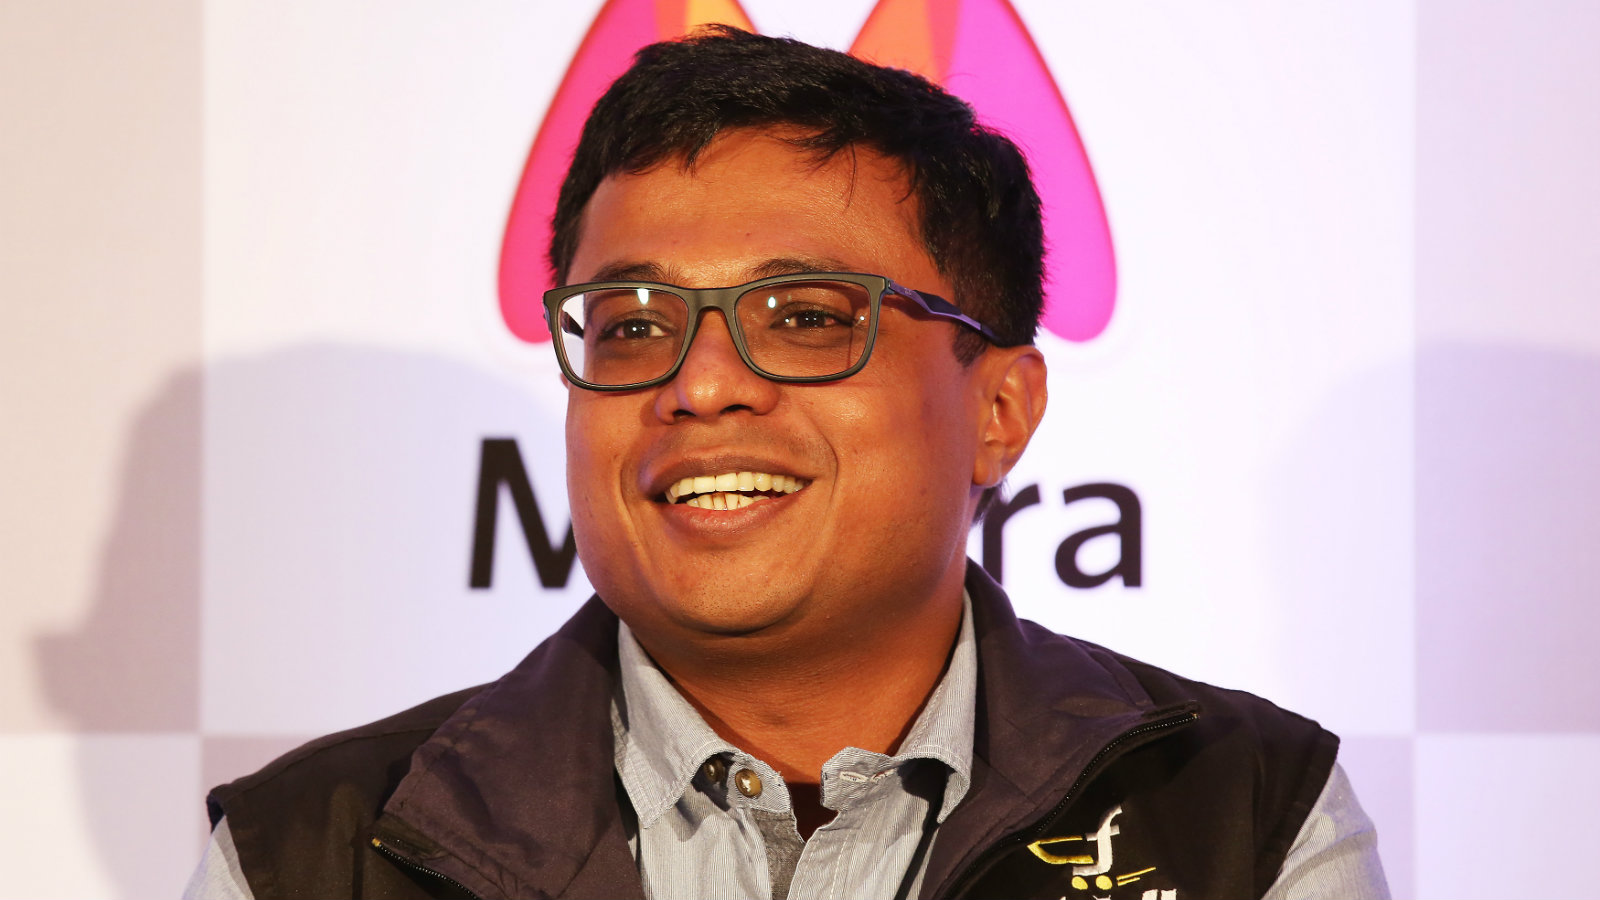 Flipkart CEO Sachin Bansal addresses a news conference in Bangalore, India, 12 May 2015. India's e-commerce giants Flipkart and largest online fashion retailer Myntra will become a mobile app-only shopping platform starting 15 May, which intended to accelerate a consumer shift towards using smartphones to shop online, save cost and reduce dependence. The number of mobile Internet users in India is expected to reach 213 million by June, according to a 2014 report and it will be approximately 480 million mobile Internet users by end of 2017.